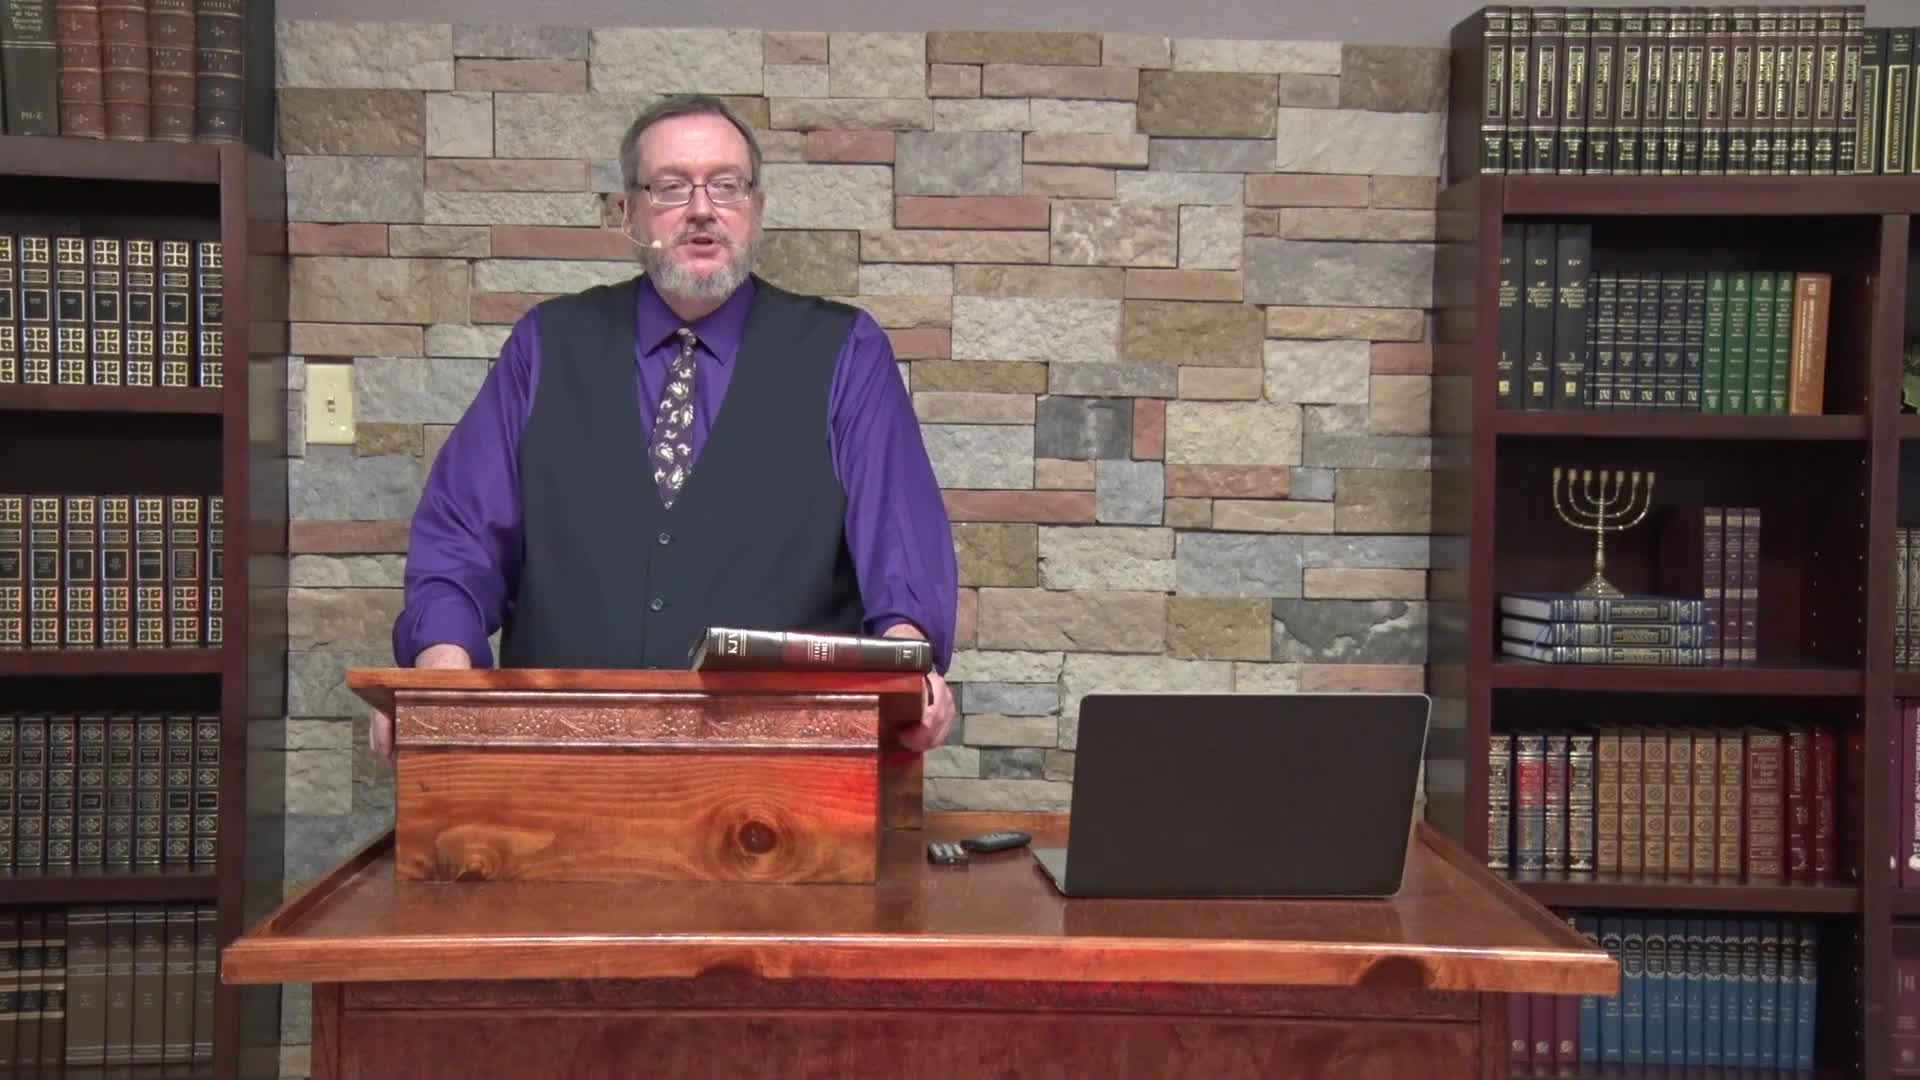 Michael K Lake - Sevenfold Anointing of Messiah Part 4